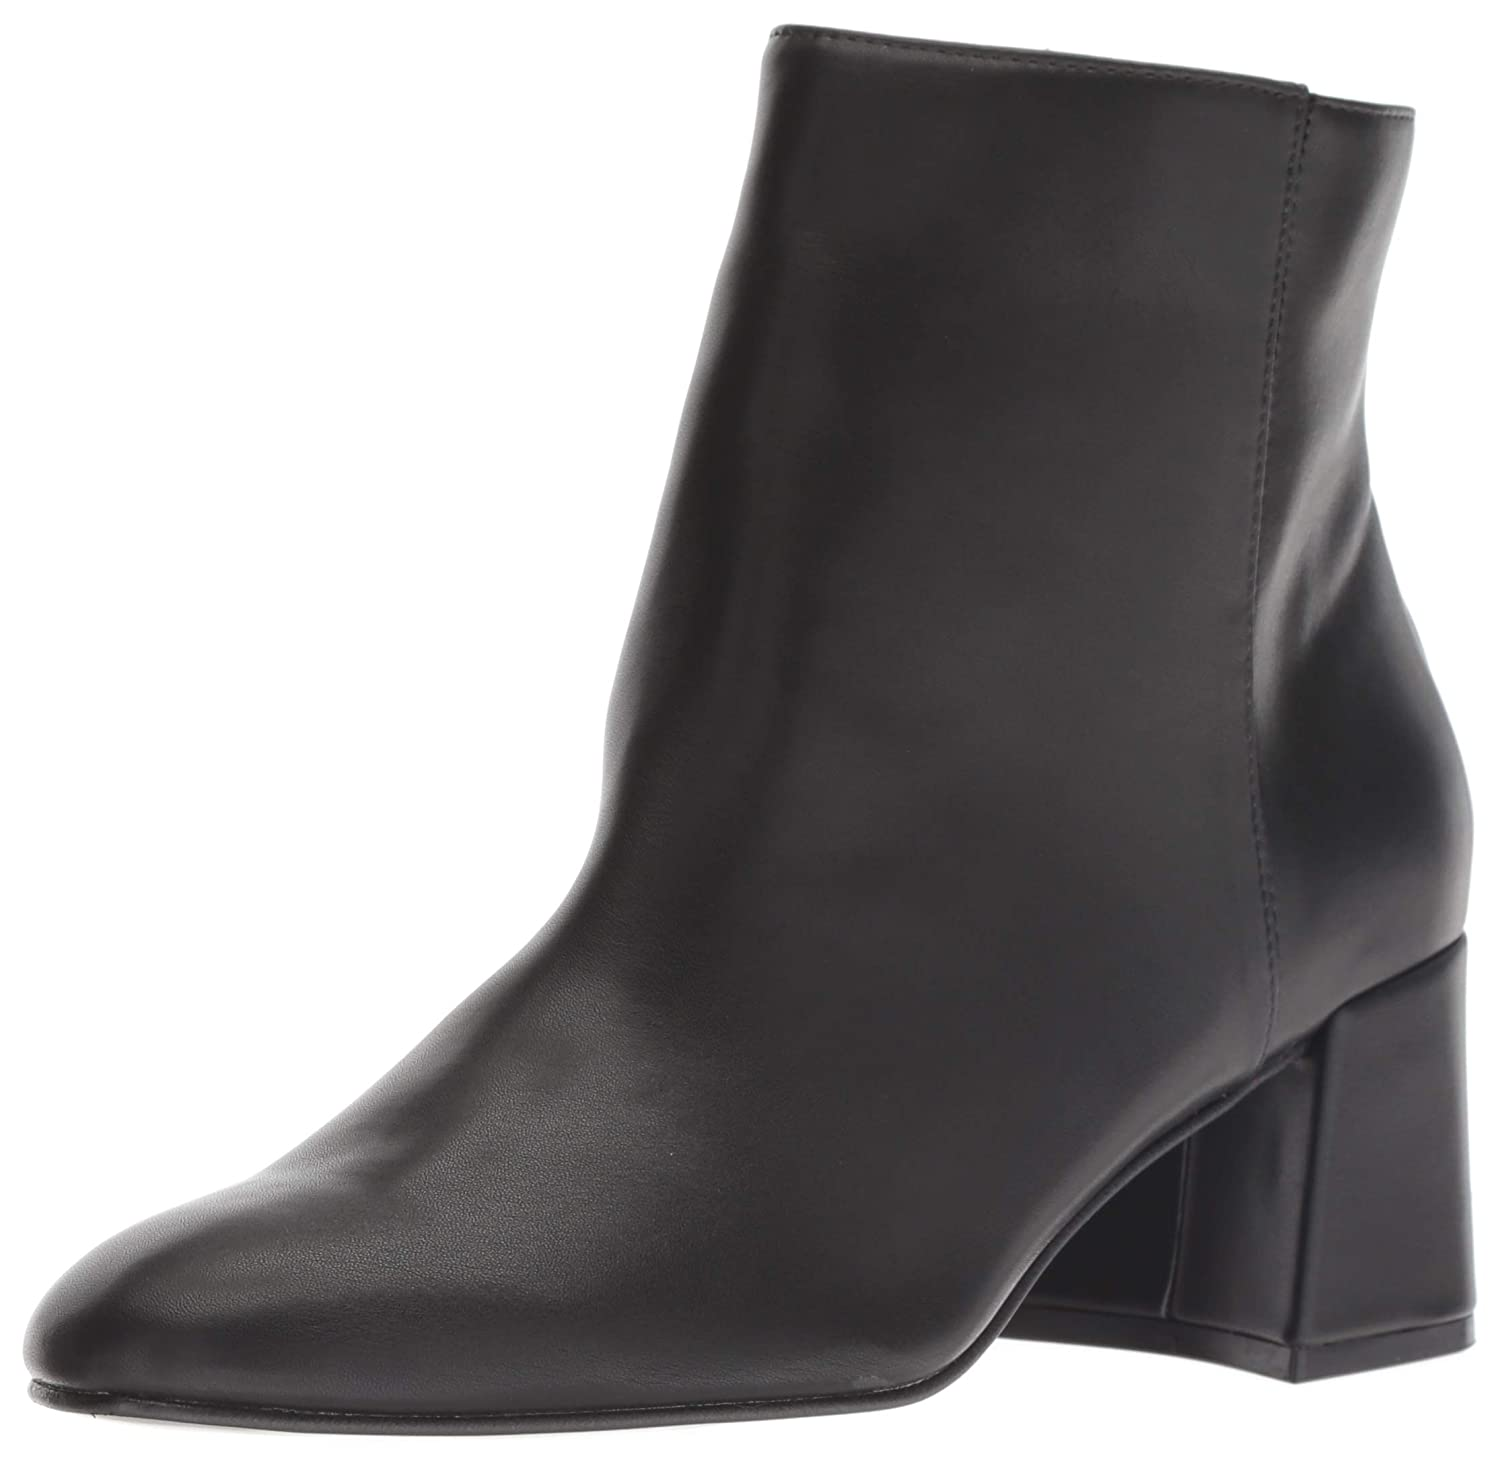 5b8e3863360 Amazon.com  Chinese Laundry Women s Daria Ankle Boot  Shoes